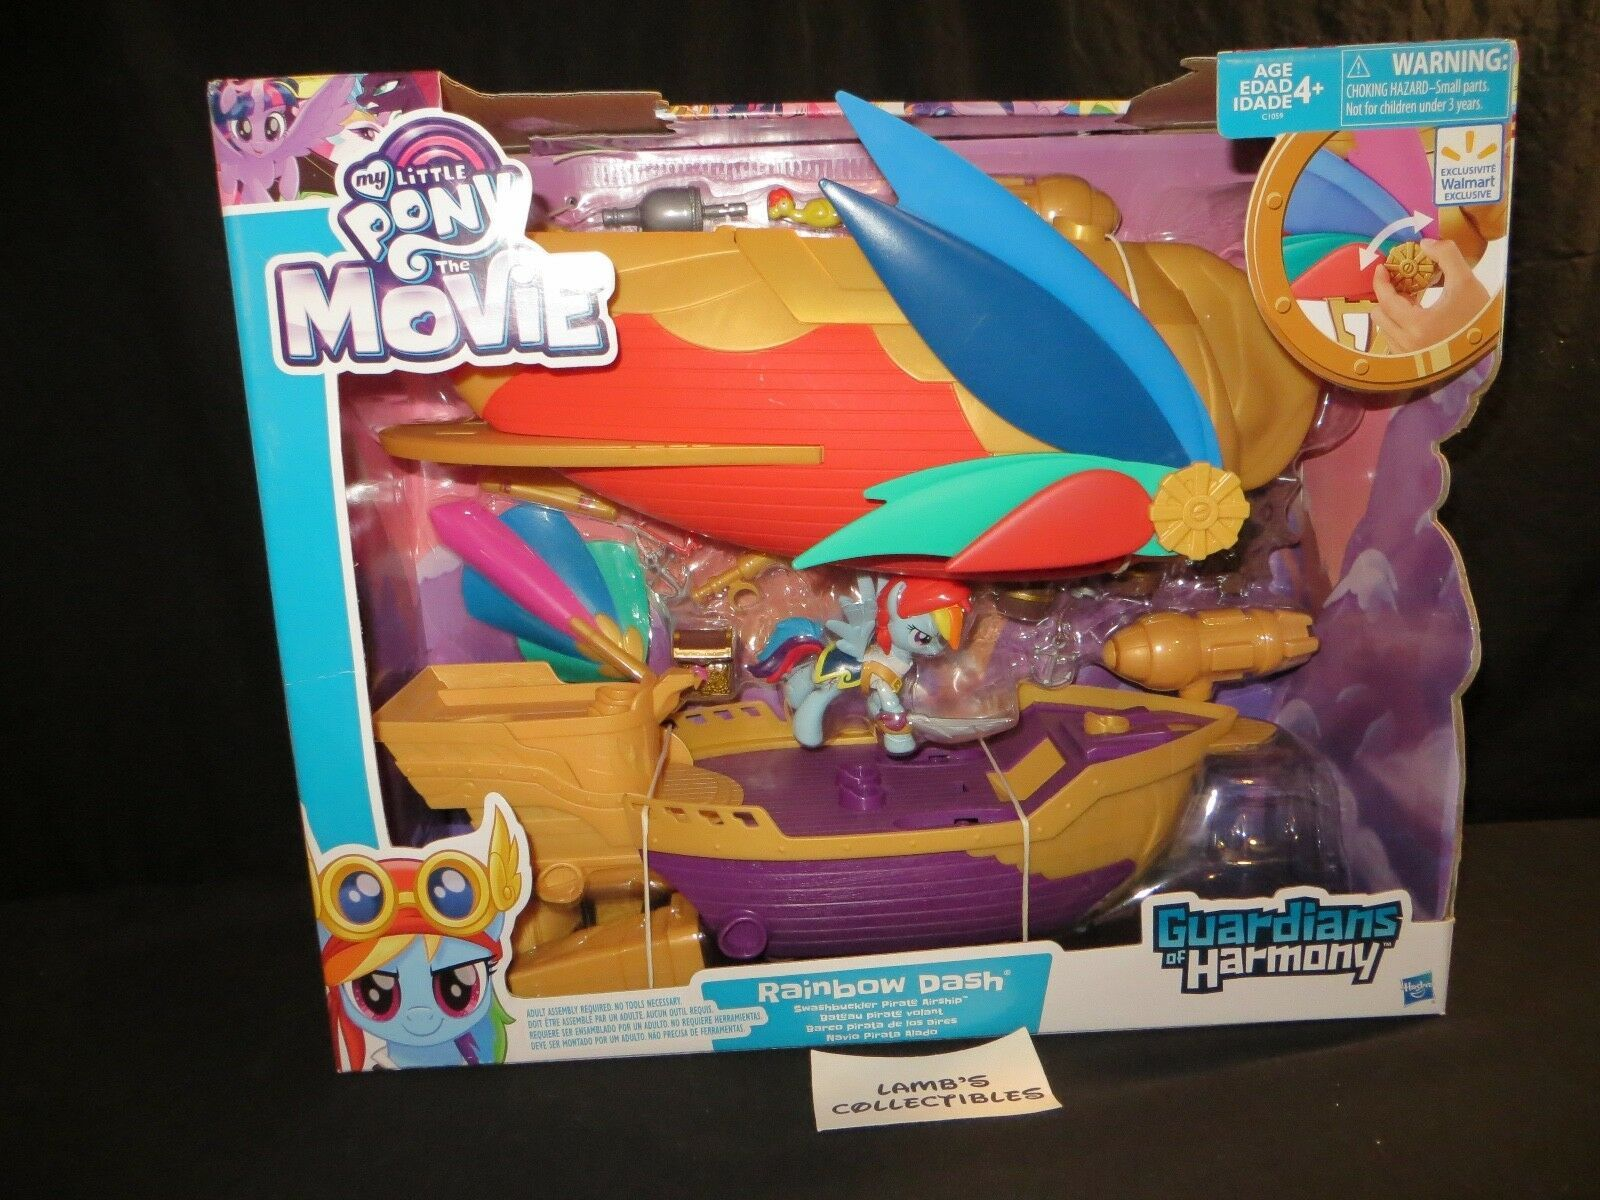 Primary image for My Little Pony The Movie Guardians of Harmony Rainbow Dash Swashbuckler Airship